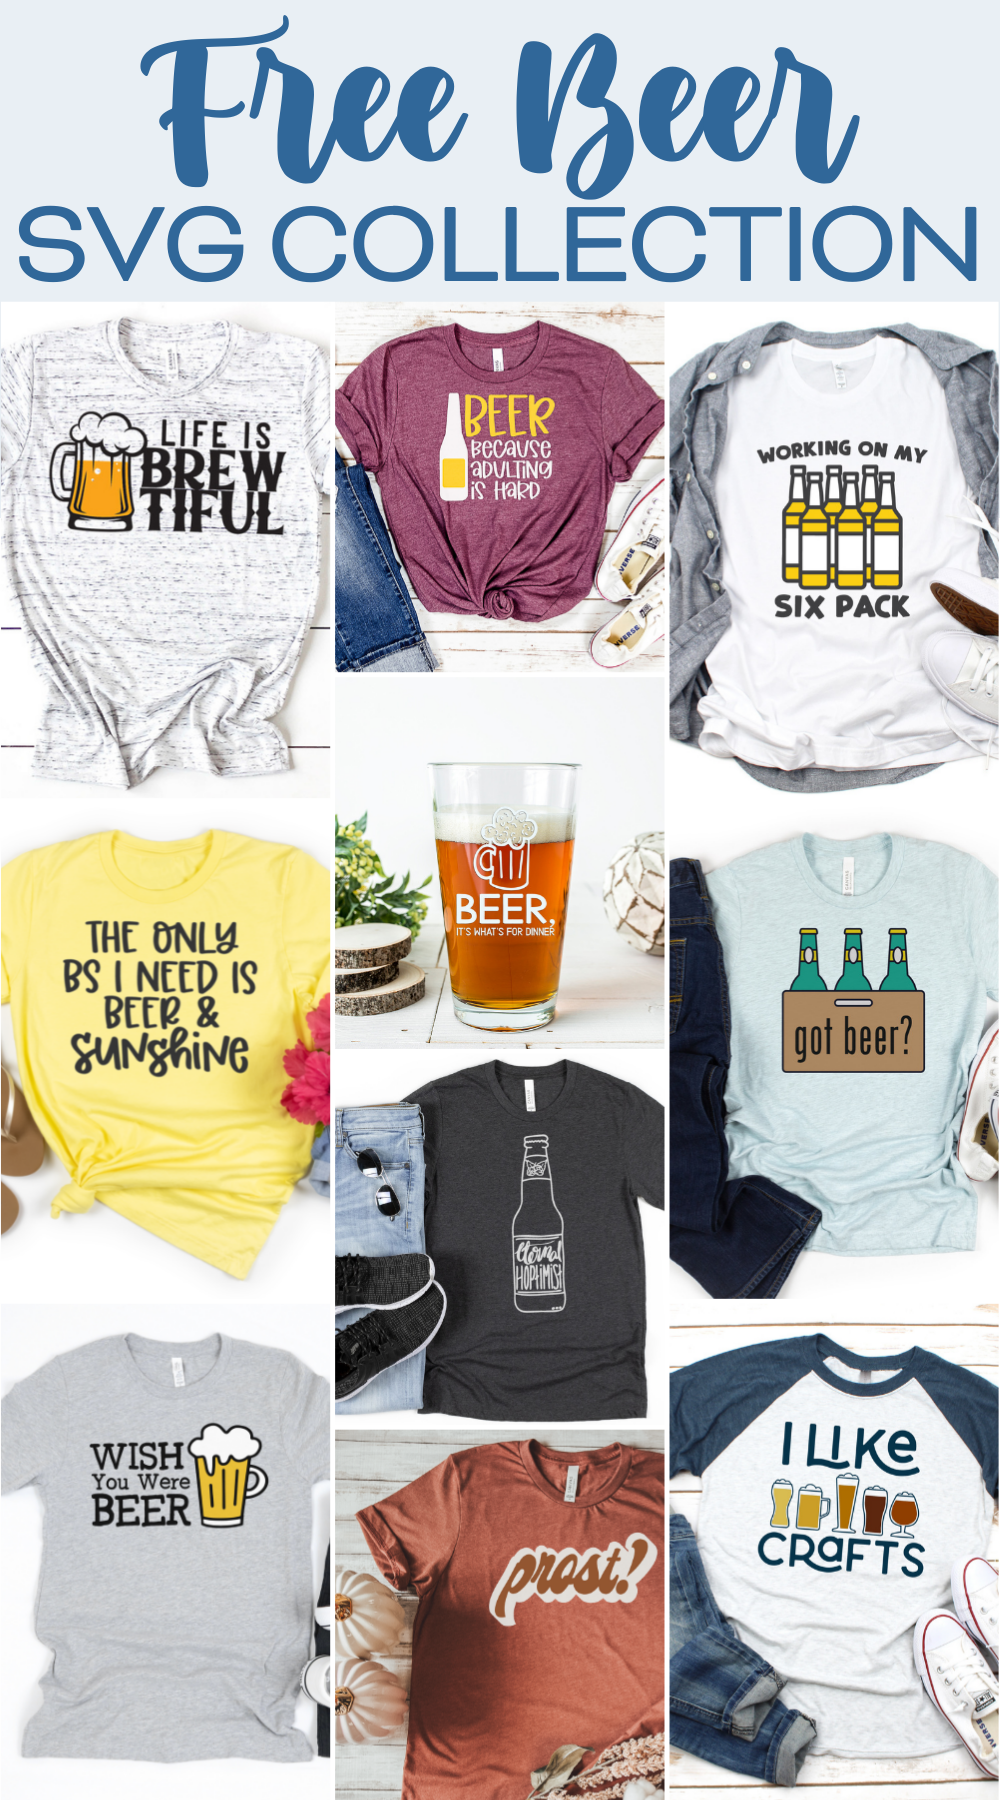 Beer SVG Collection including 10 free cut files.